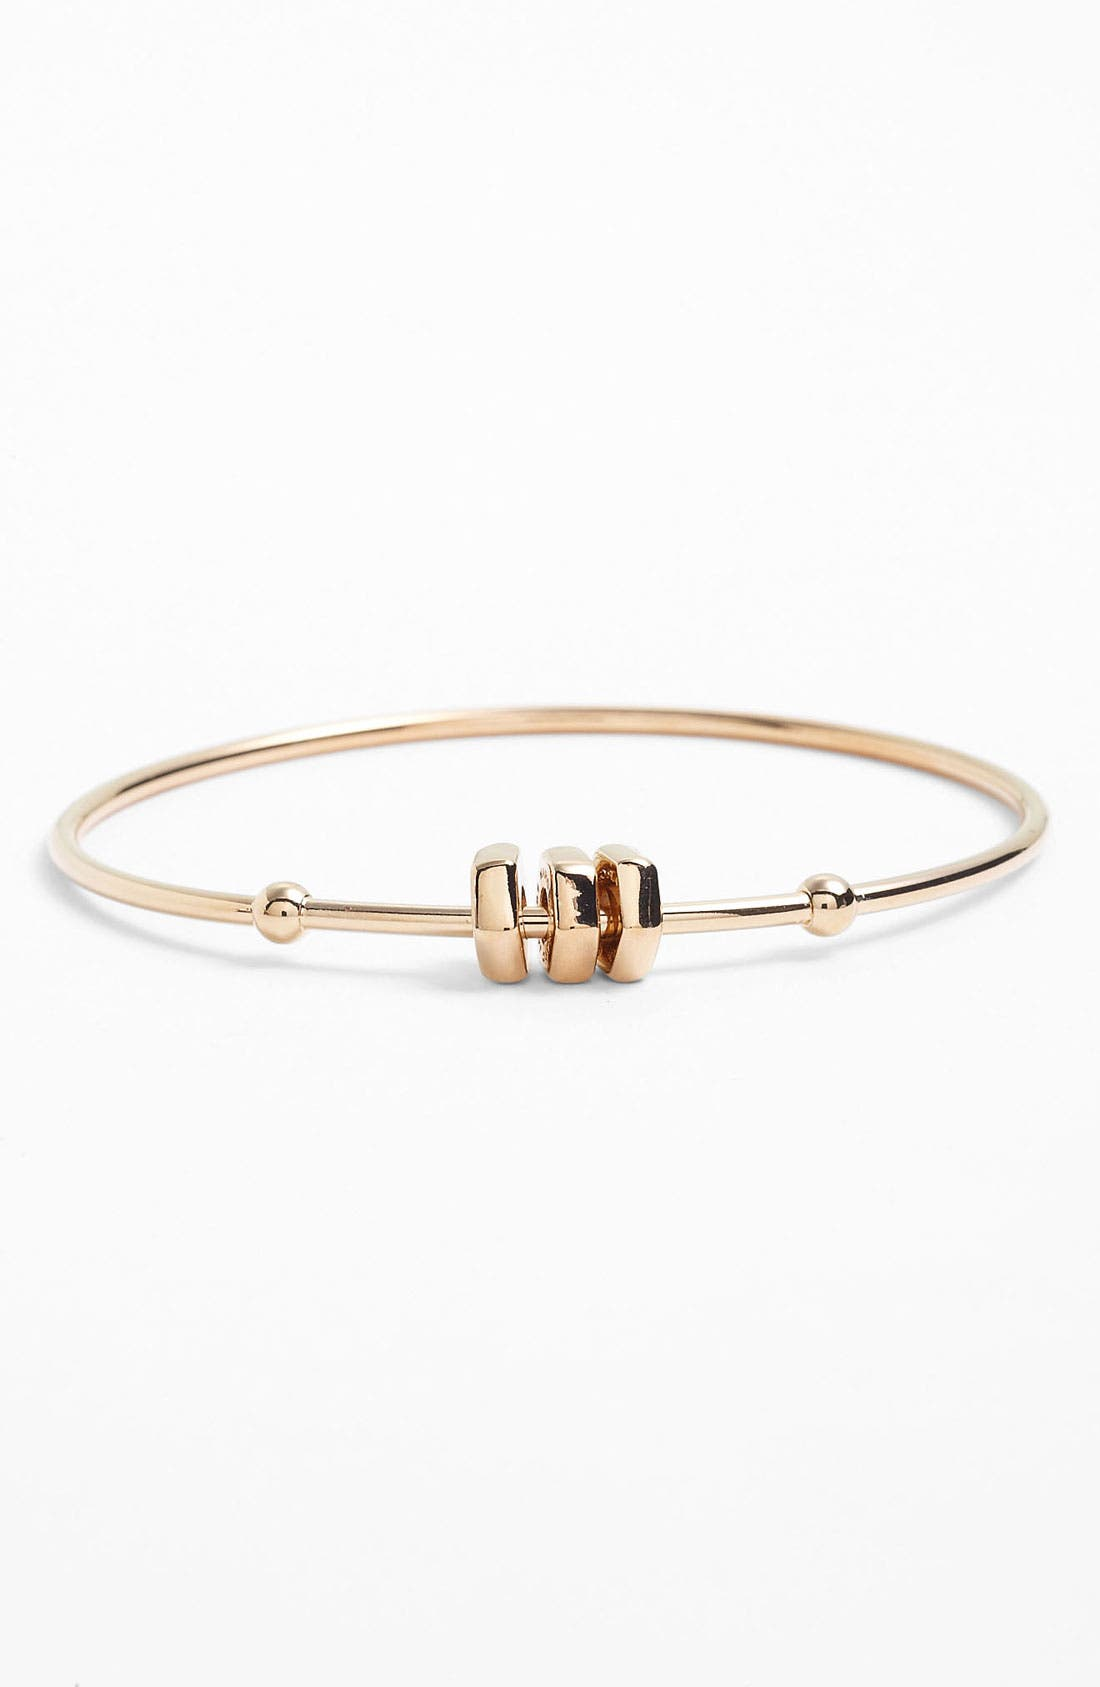 Main Image - MARC BY MARC JACOBS 'Bolts' Bangle